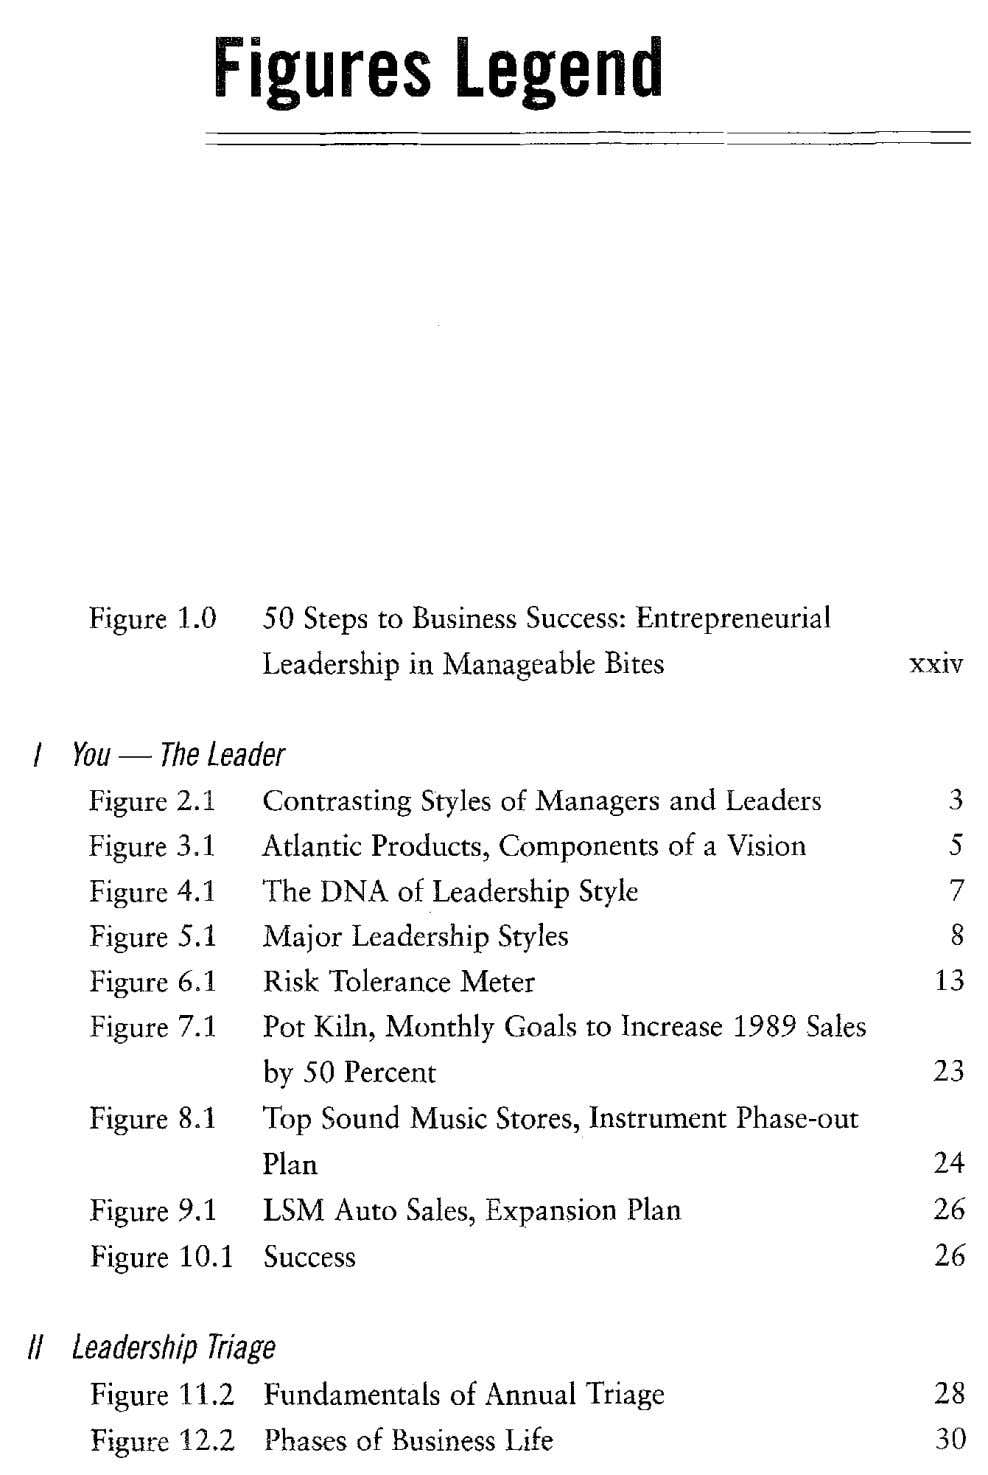 Figures Legend Figure 1.0 50 Steps to Business Success: Entrepreneurial Leadership in Manageable Bites xxiv